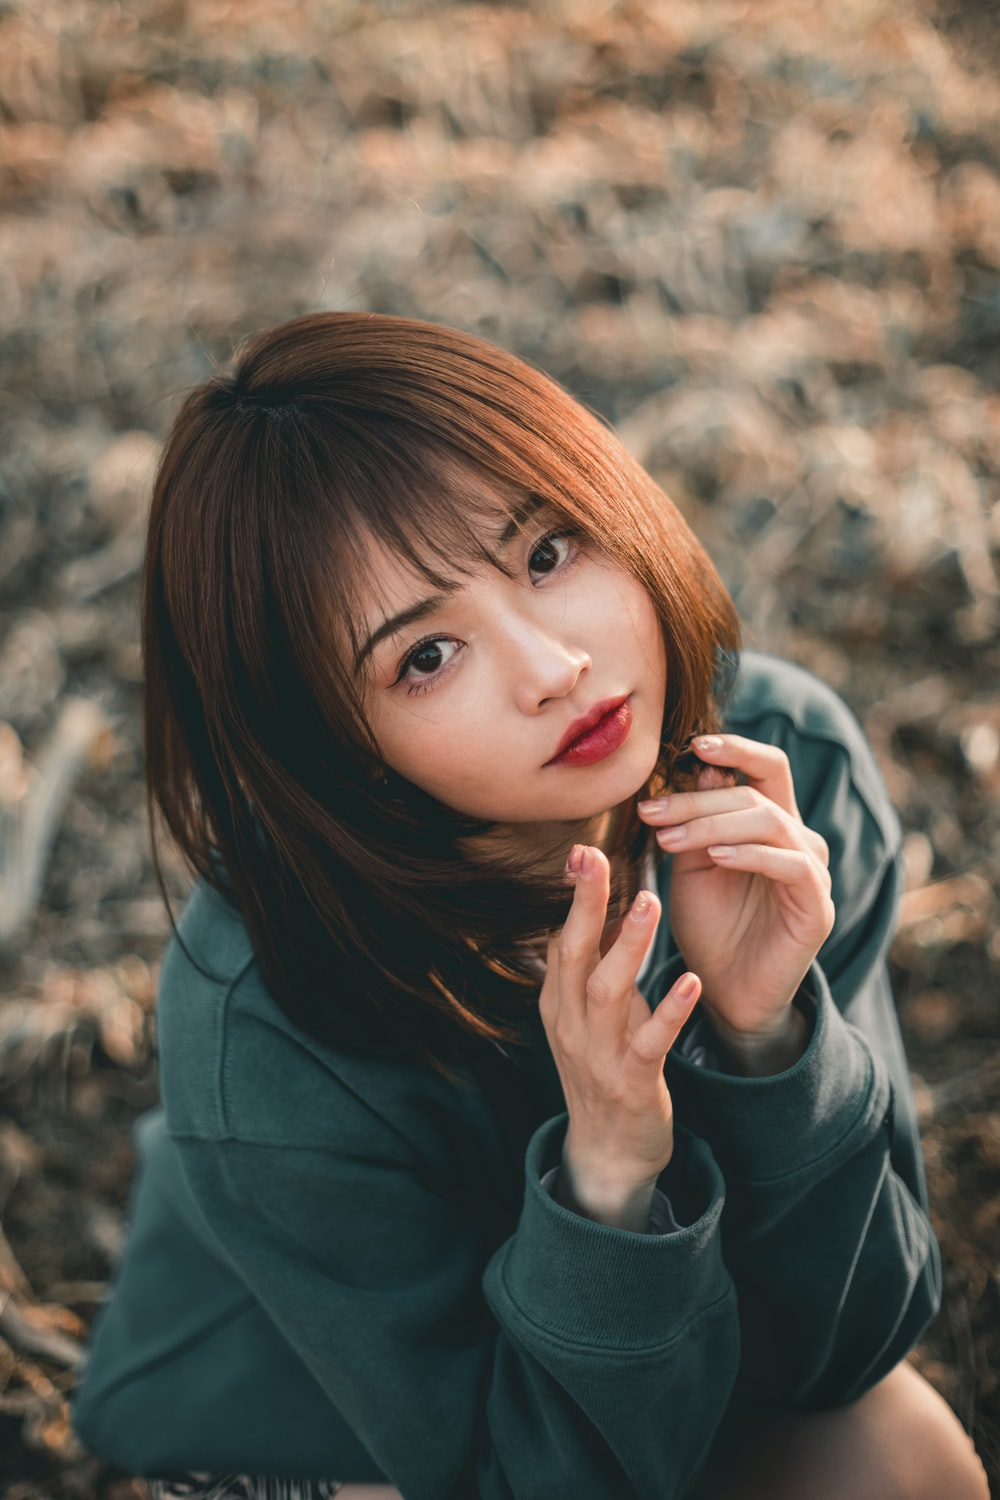 Asian Lady Pictures   Download Free Images on Unsplash